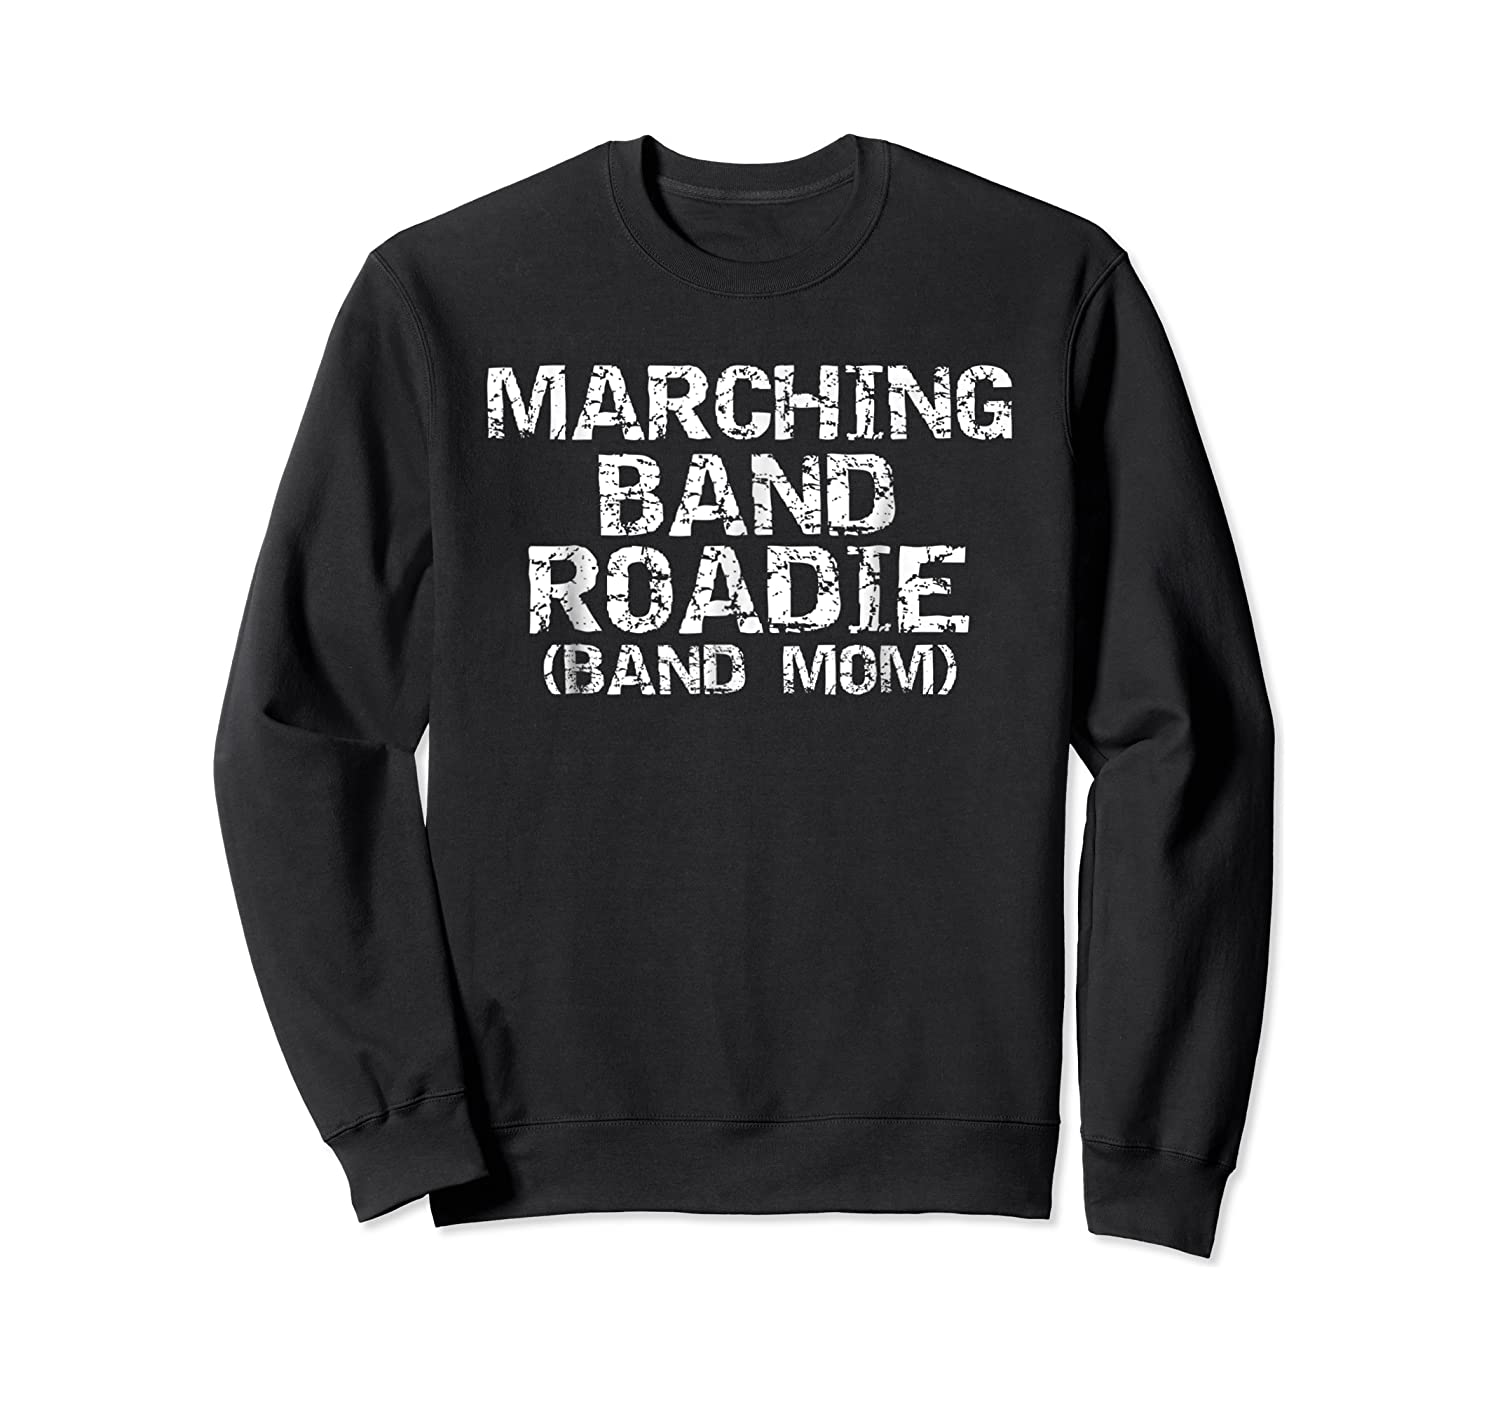 Marching Band Roadie Band Mom Funny Mother Shirts Crewneck Sweater